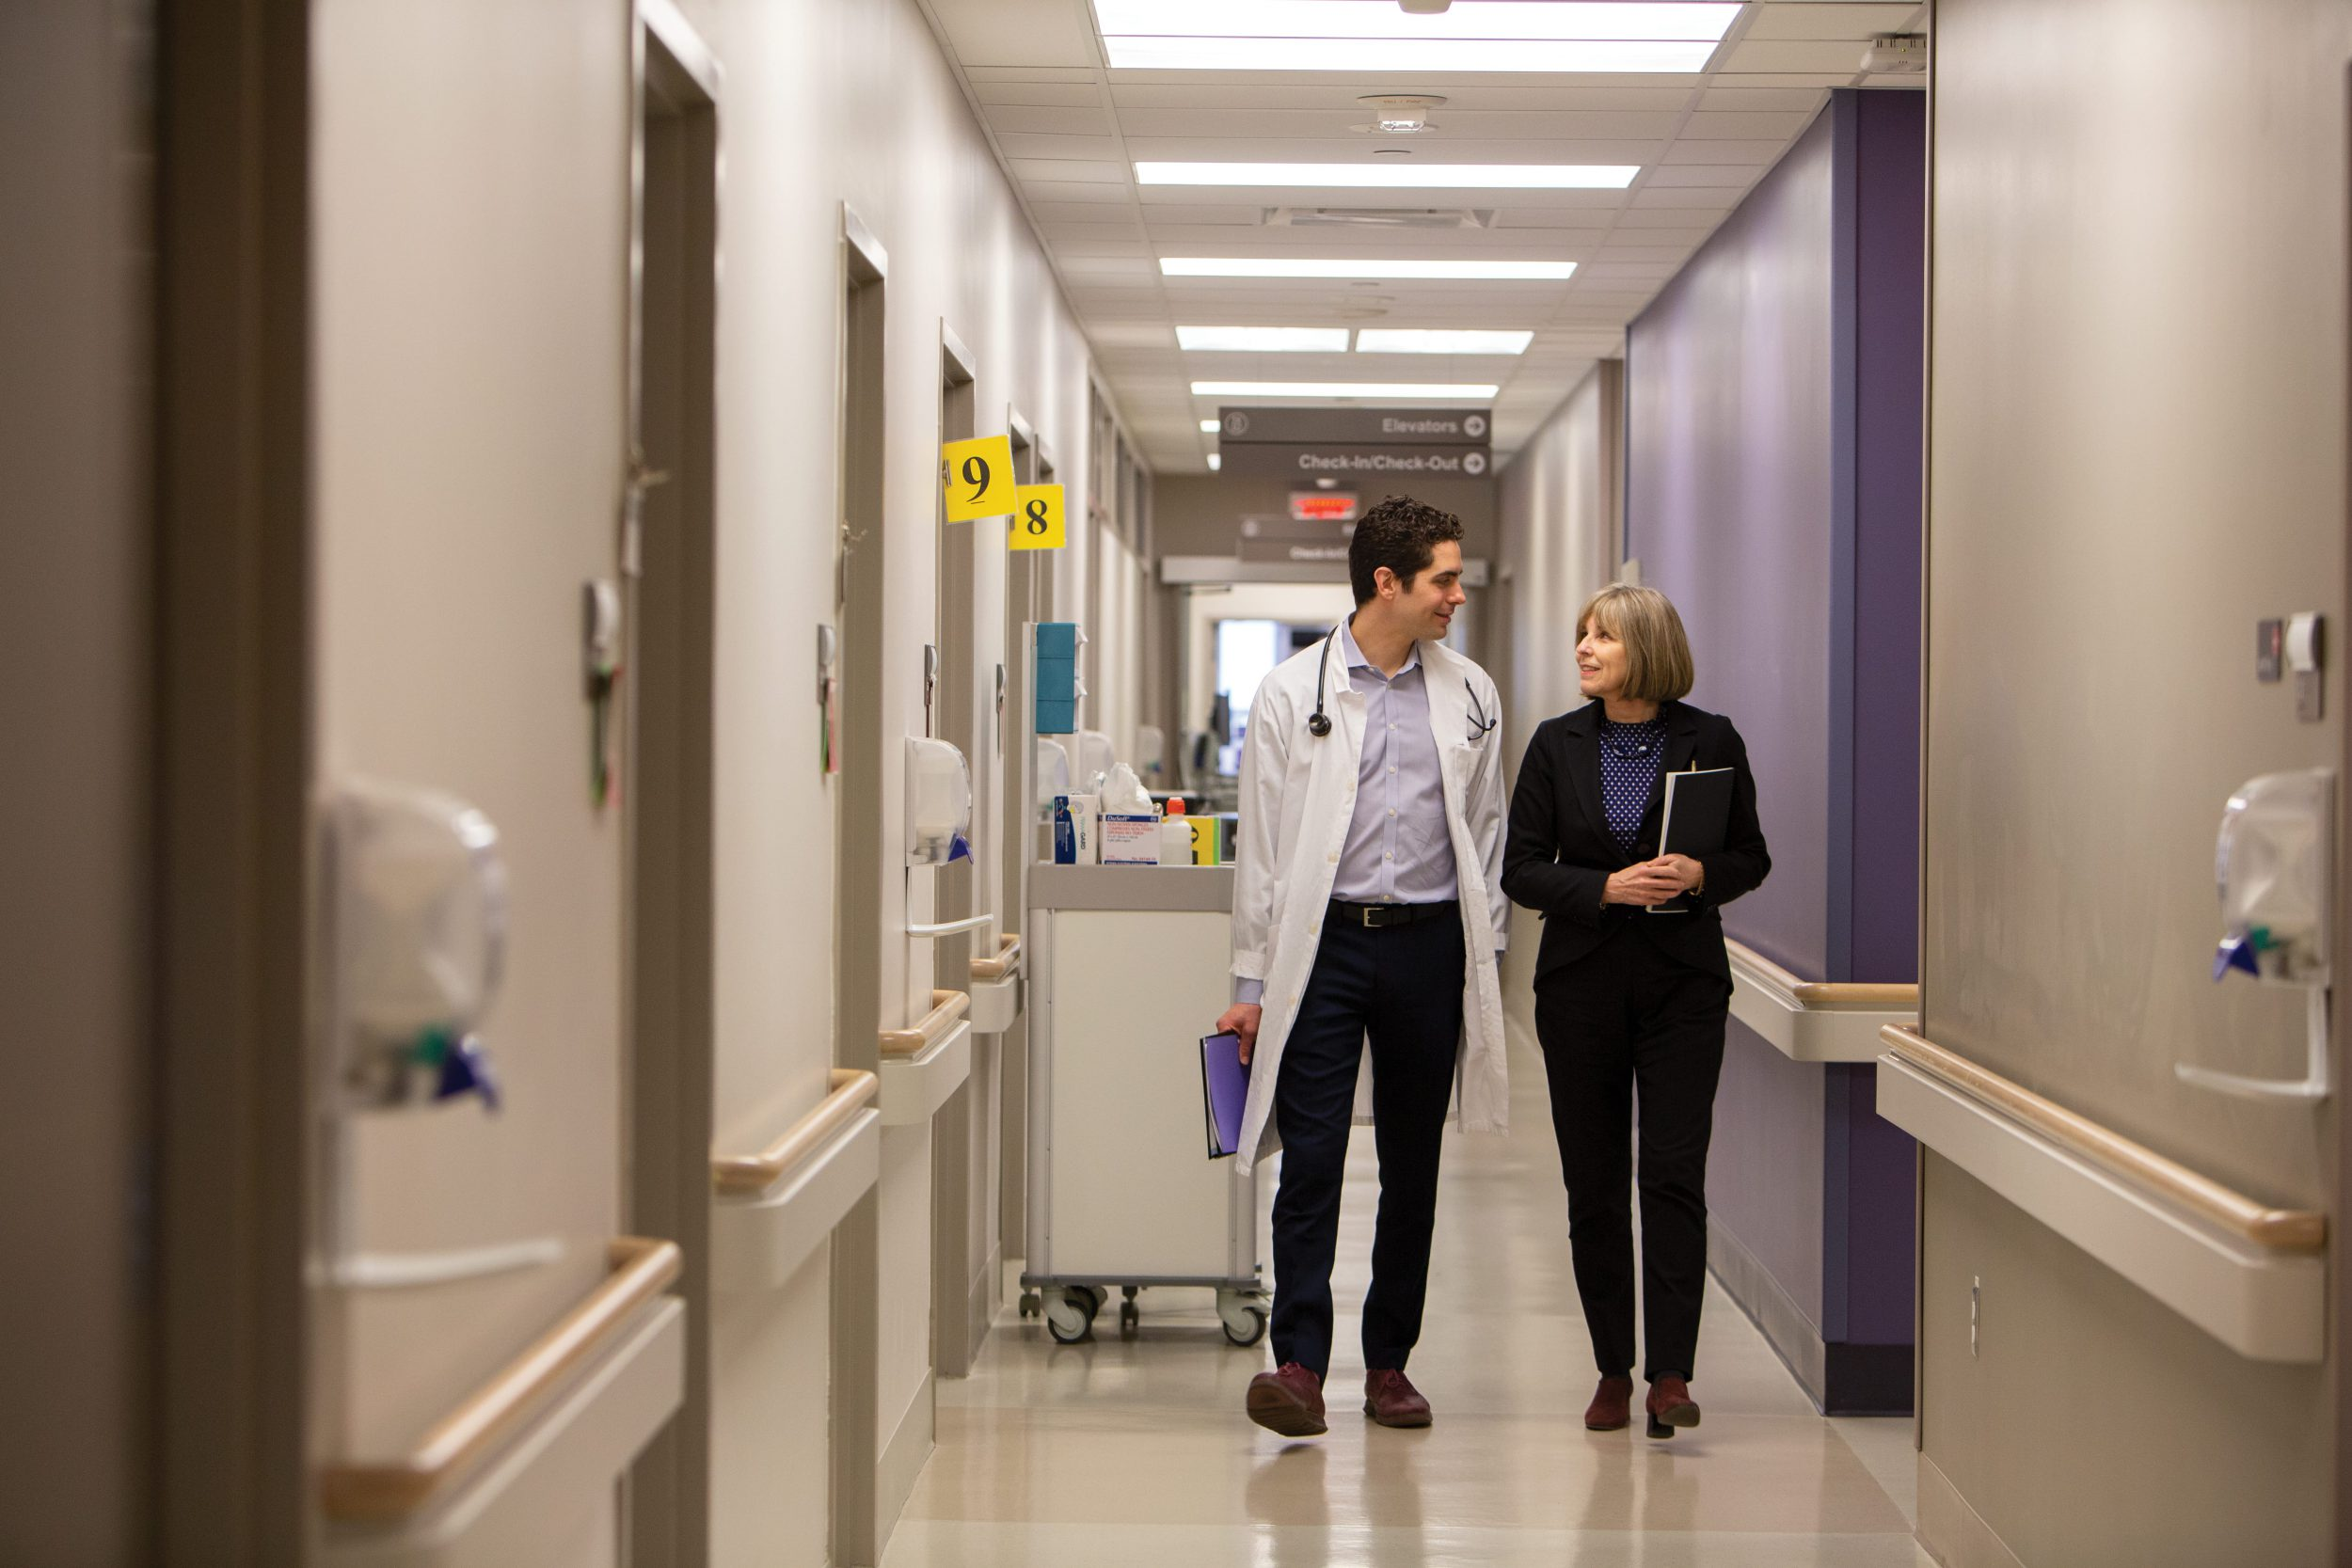 Dr. Stall and Dr. Rochon walk down a hallway